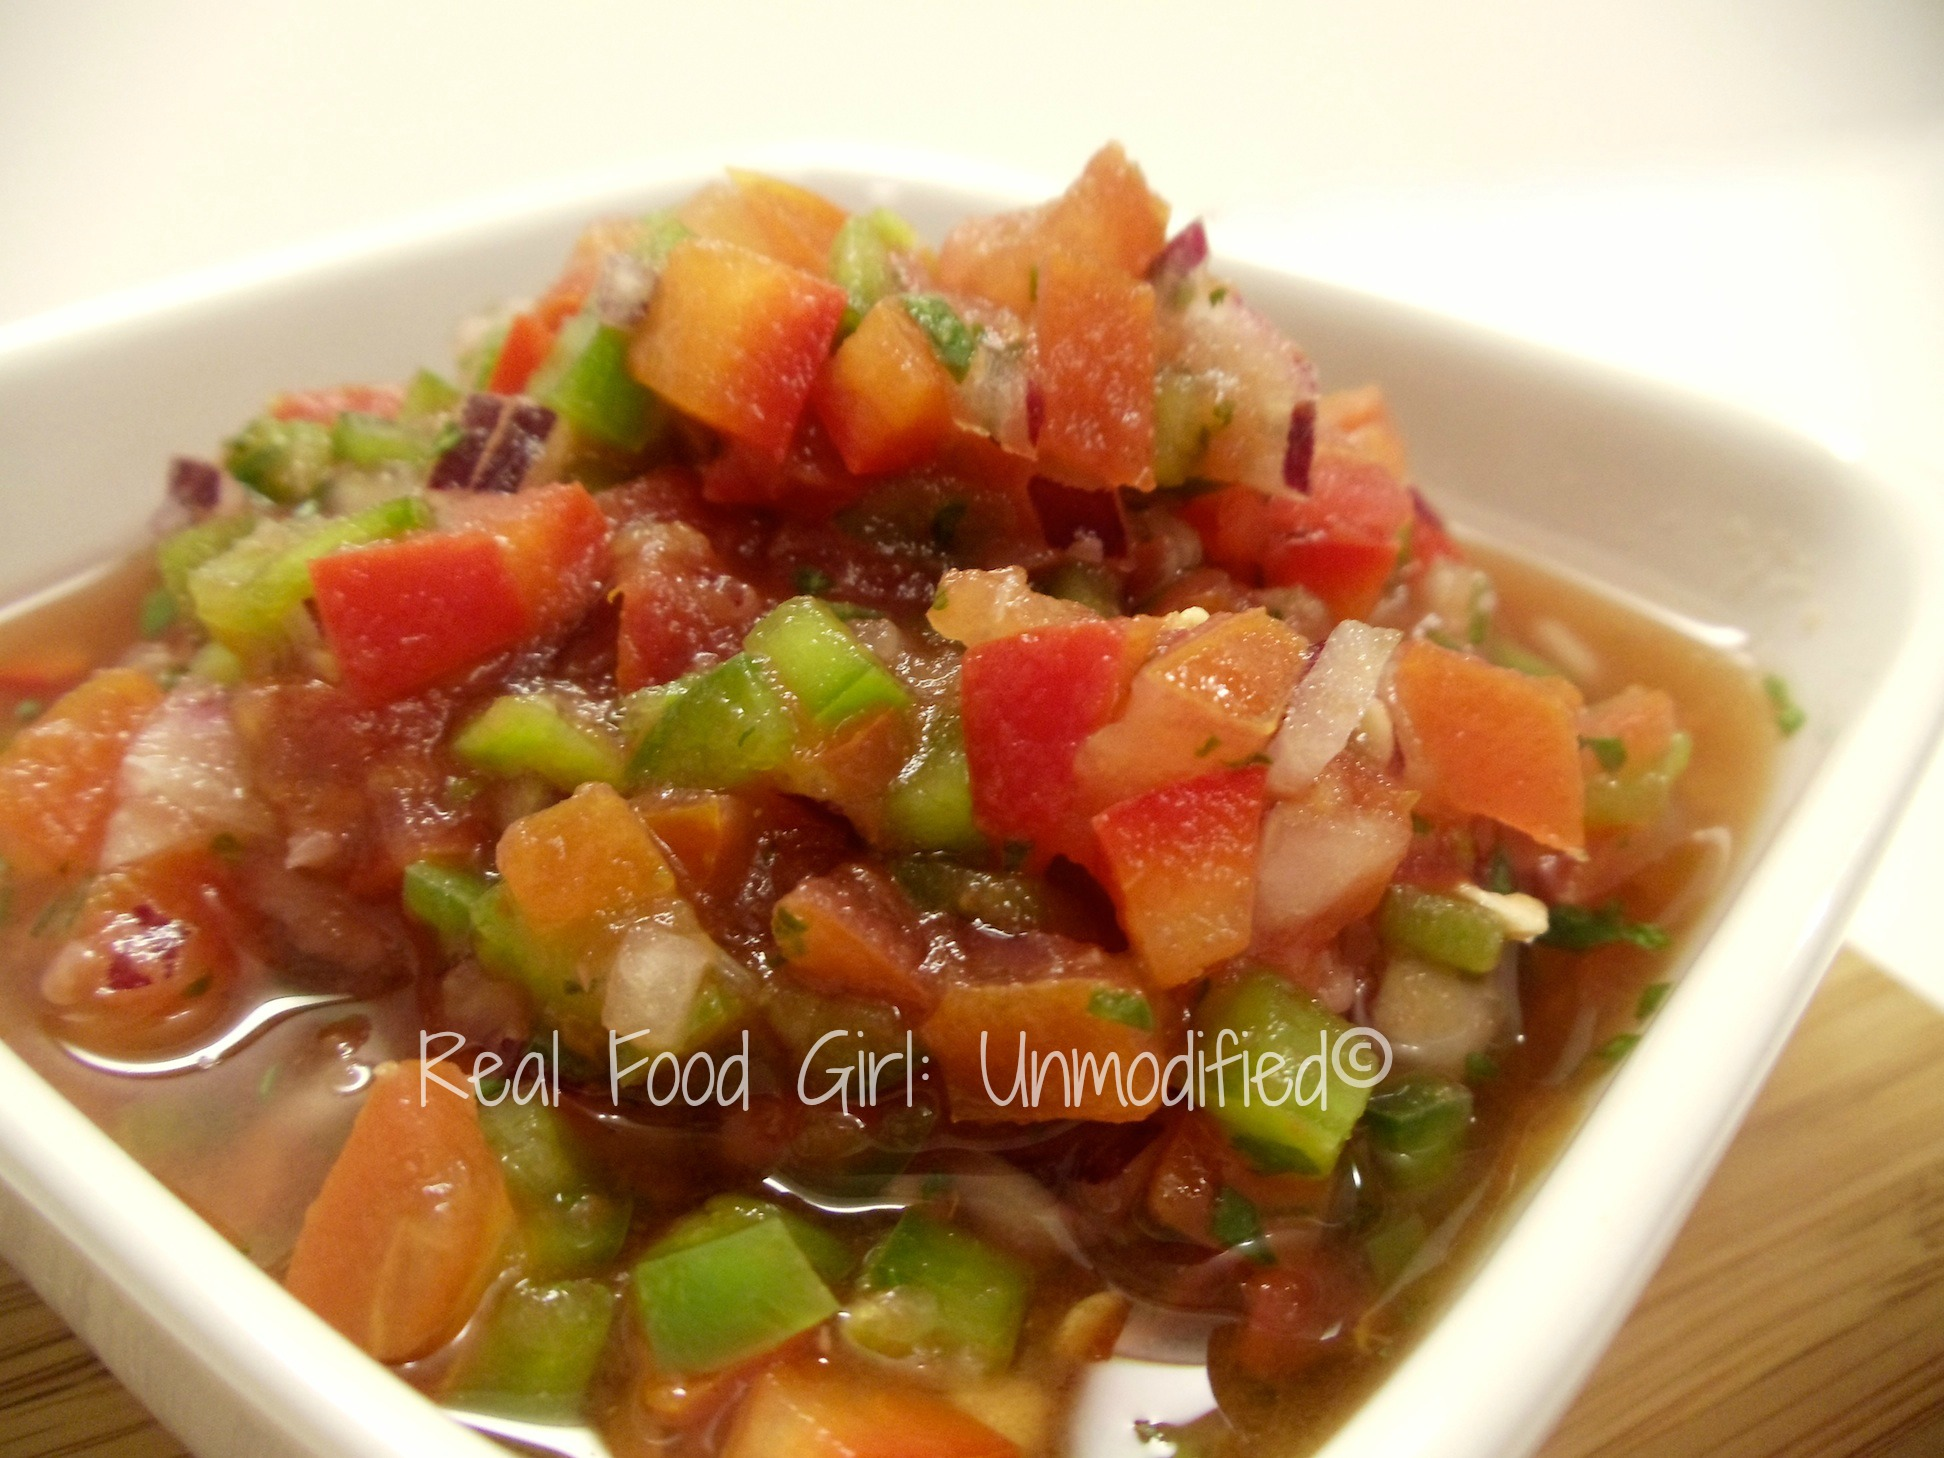 Fresh Organic Garden Salsa. This stuff is pure happiness! #Real Food Girl: Unmodified